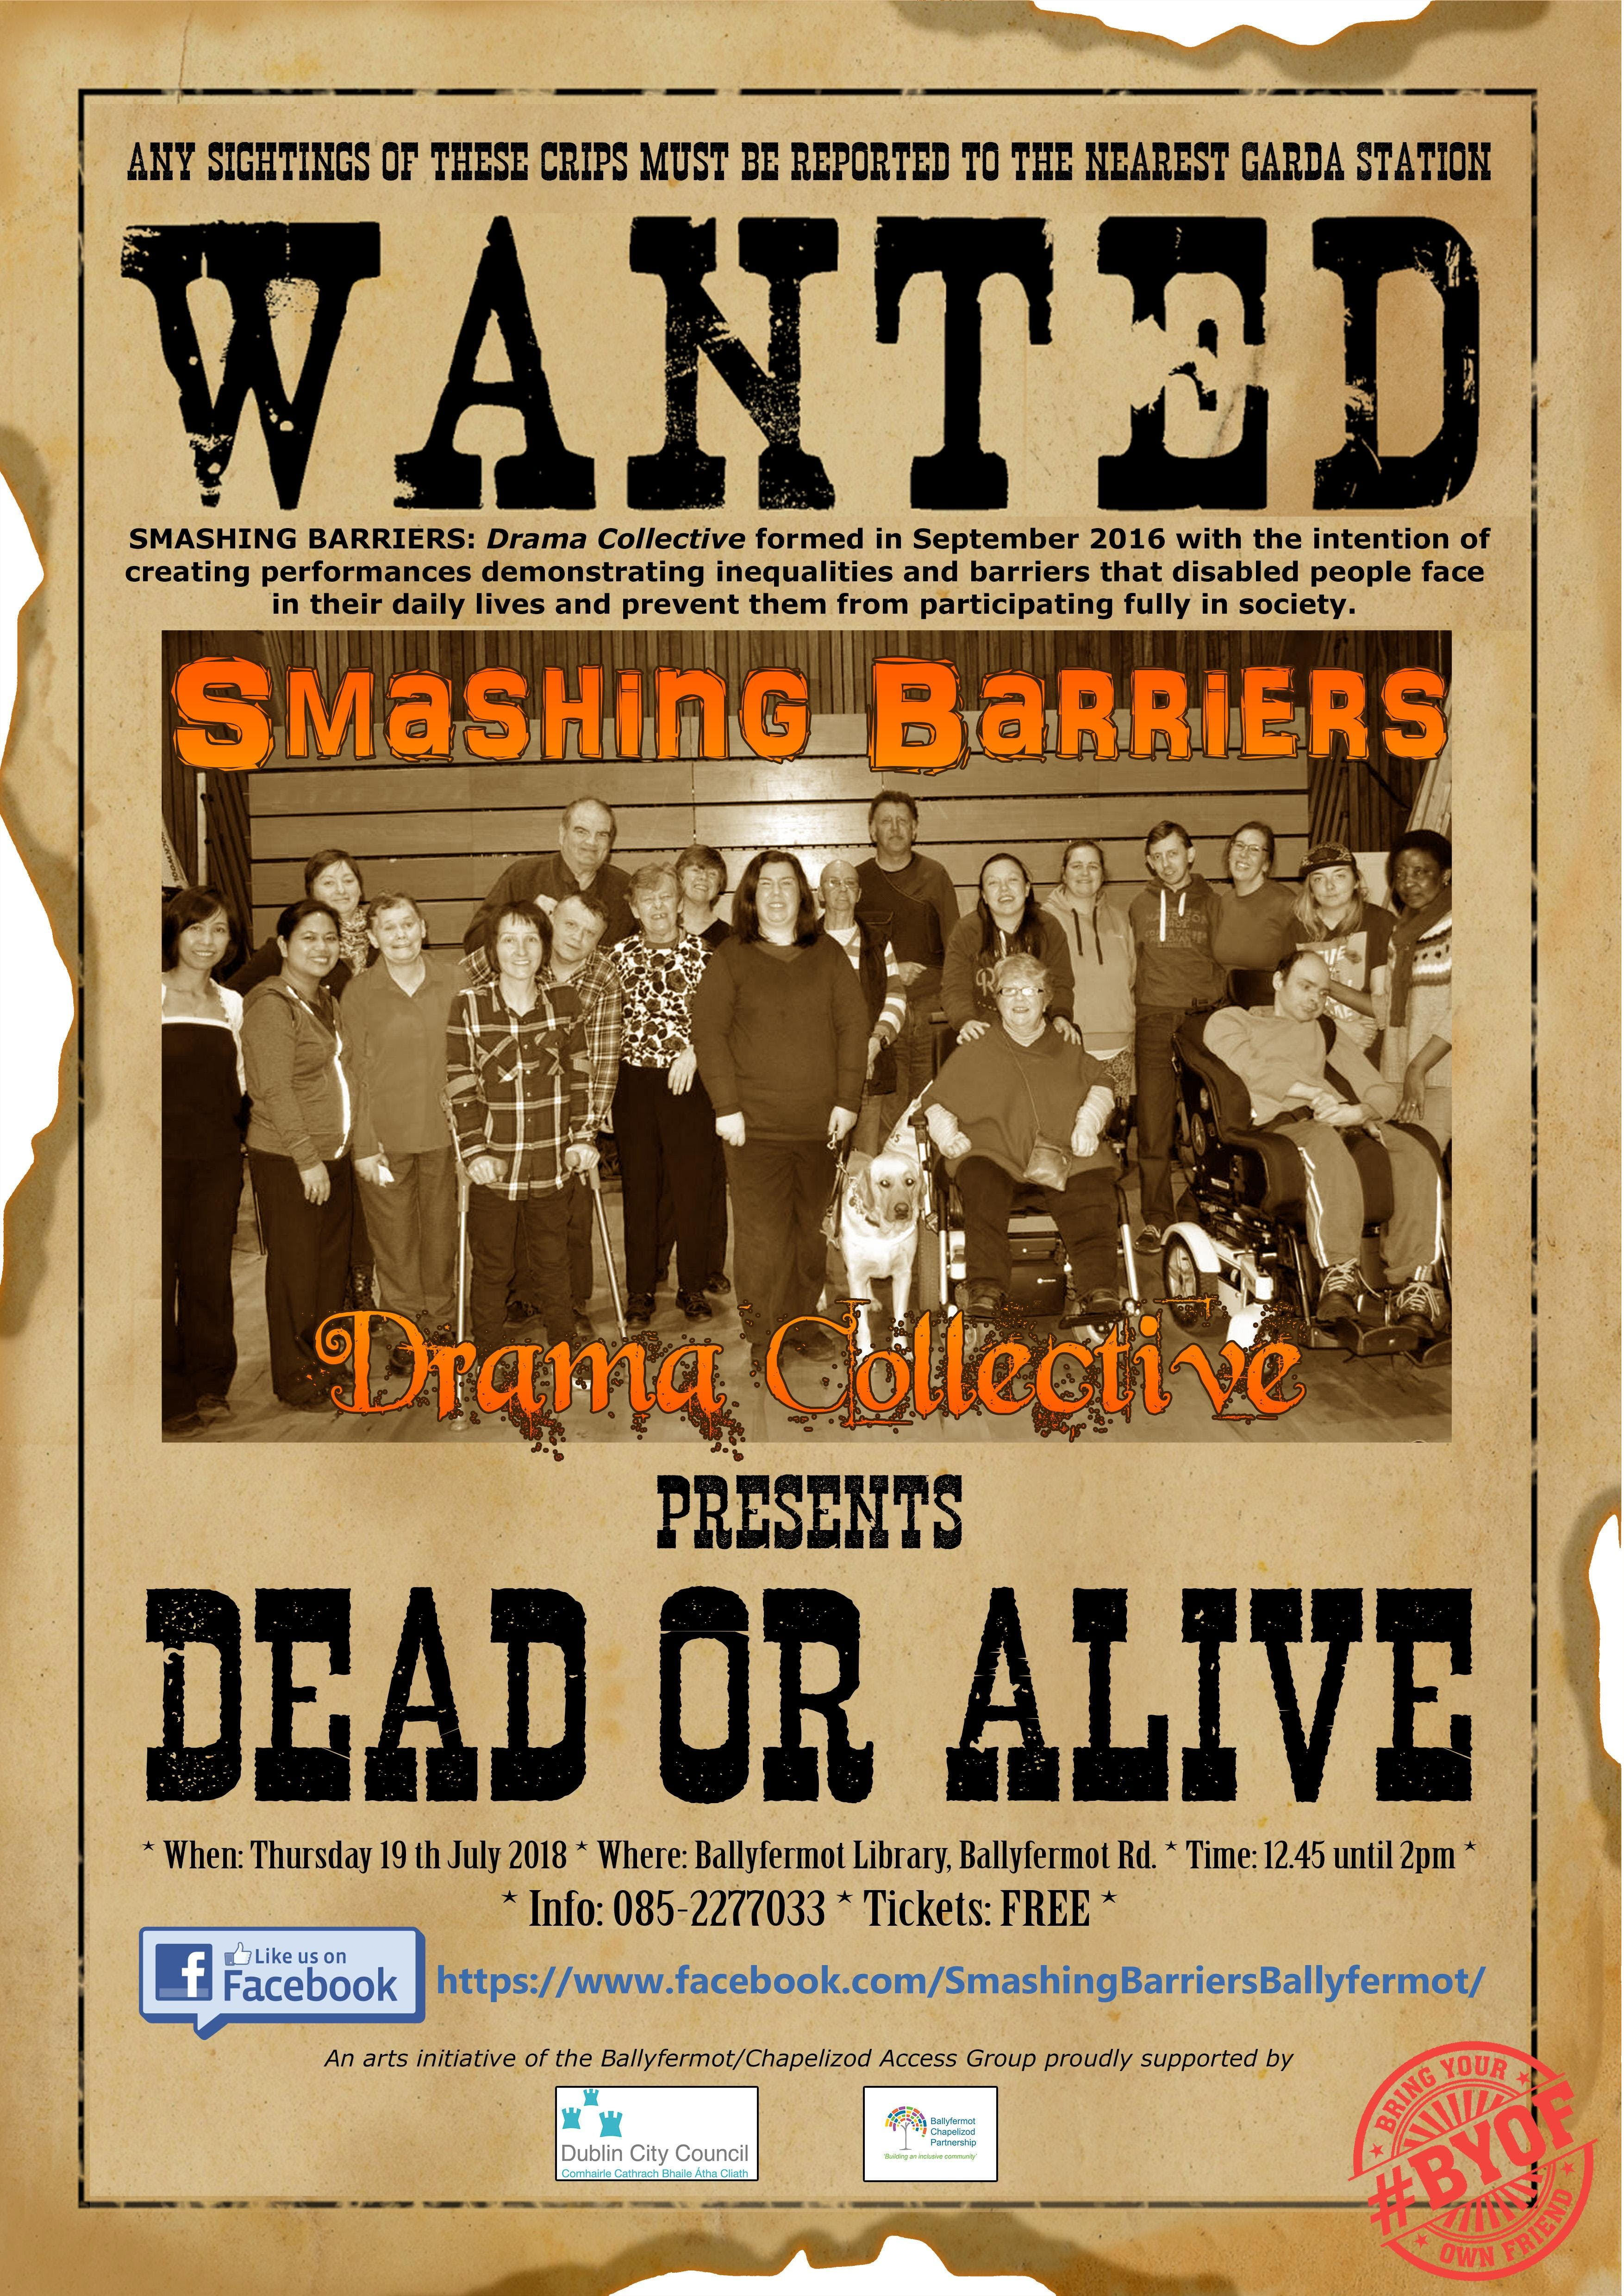 DEAD OR ALIVE presented by Smashing Barriers: Drama Collective